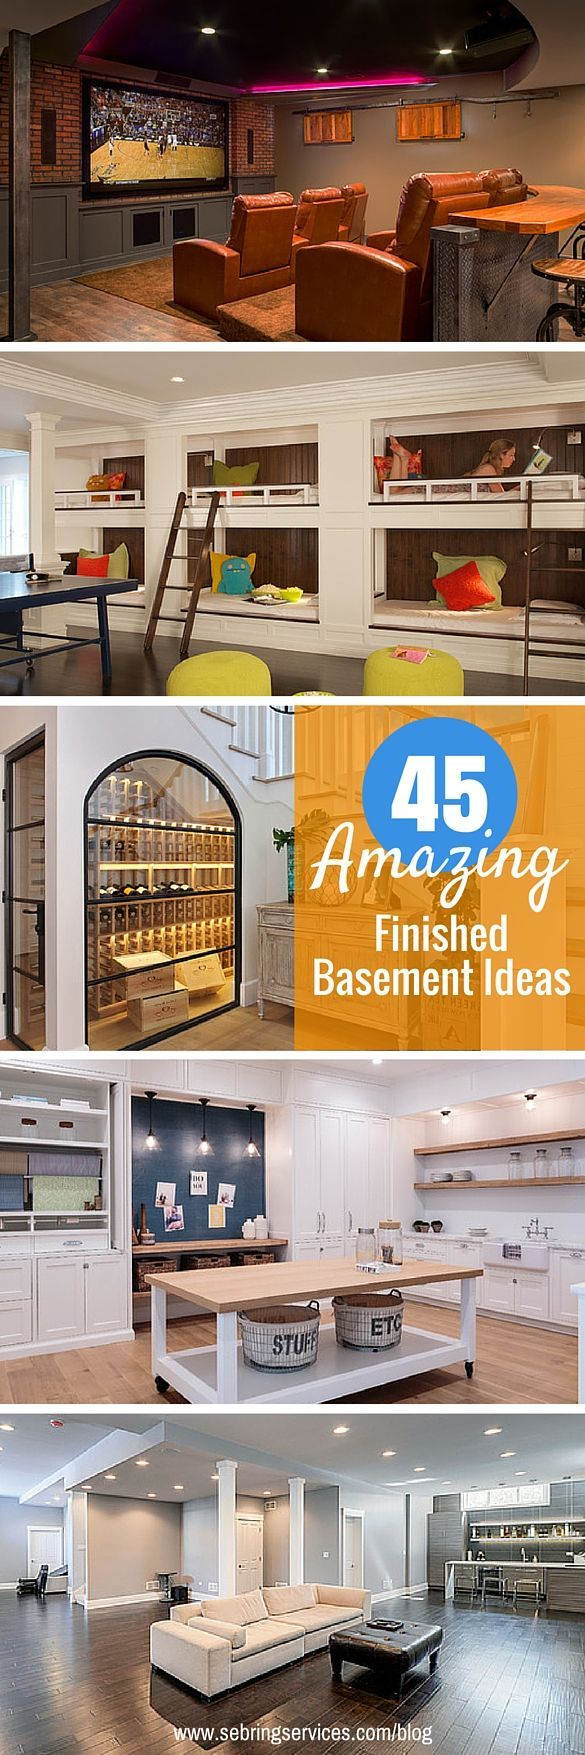 Finished basements are a large part of our business often featuring - Finished Basements Are A Large Part Of Our Business Often Featuring So You Have Decided Download